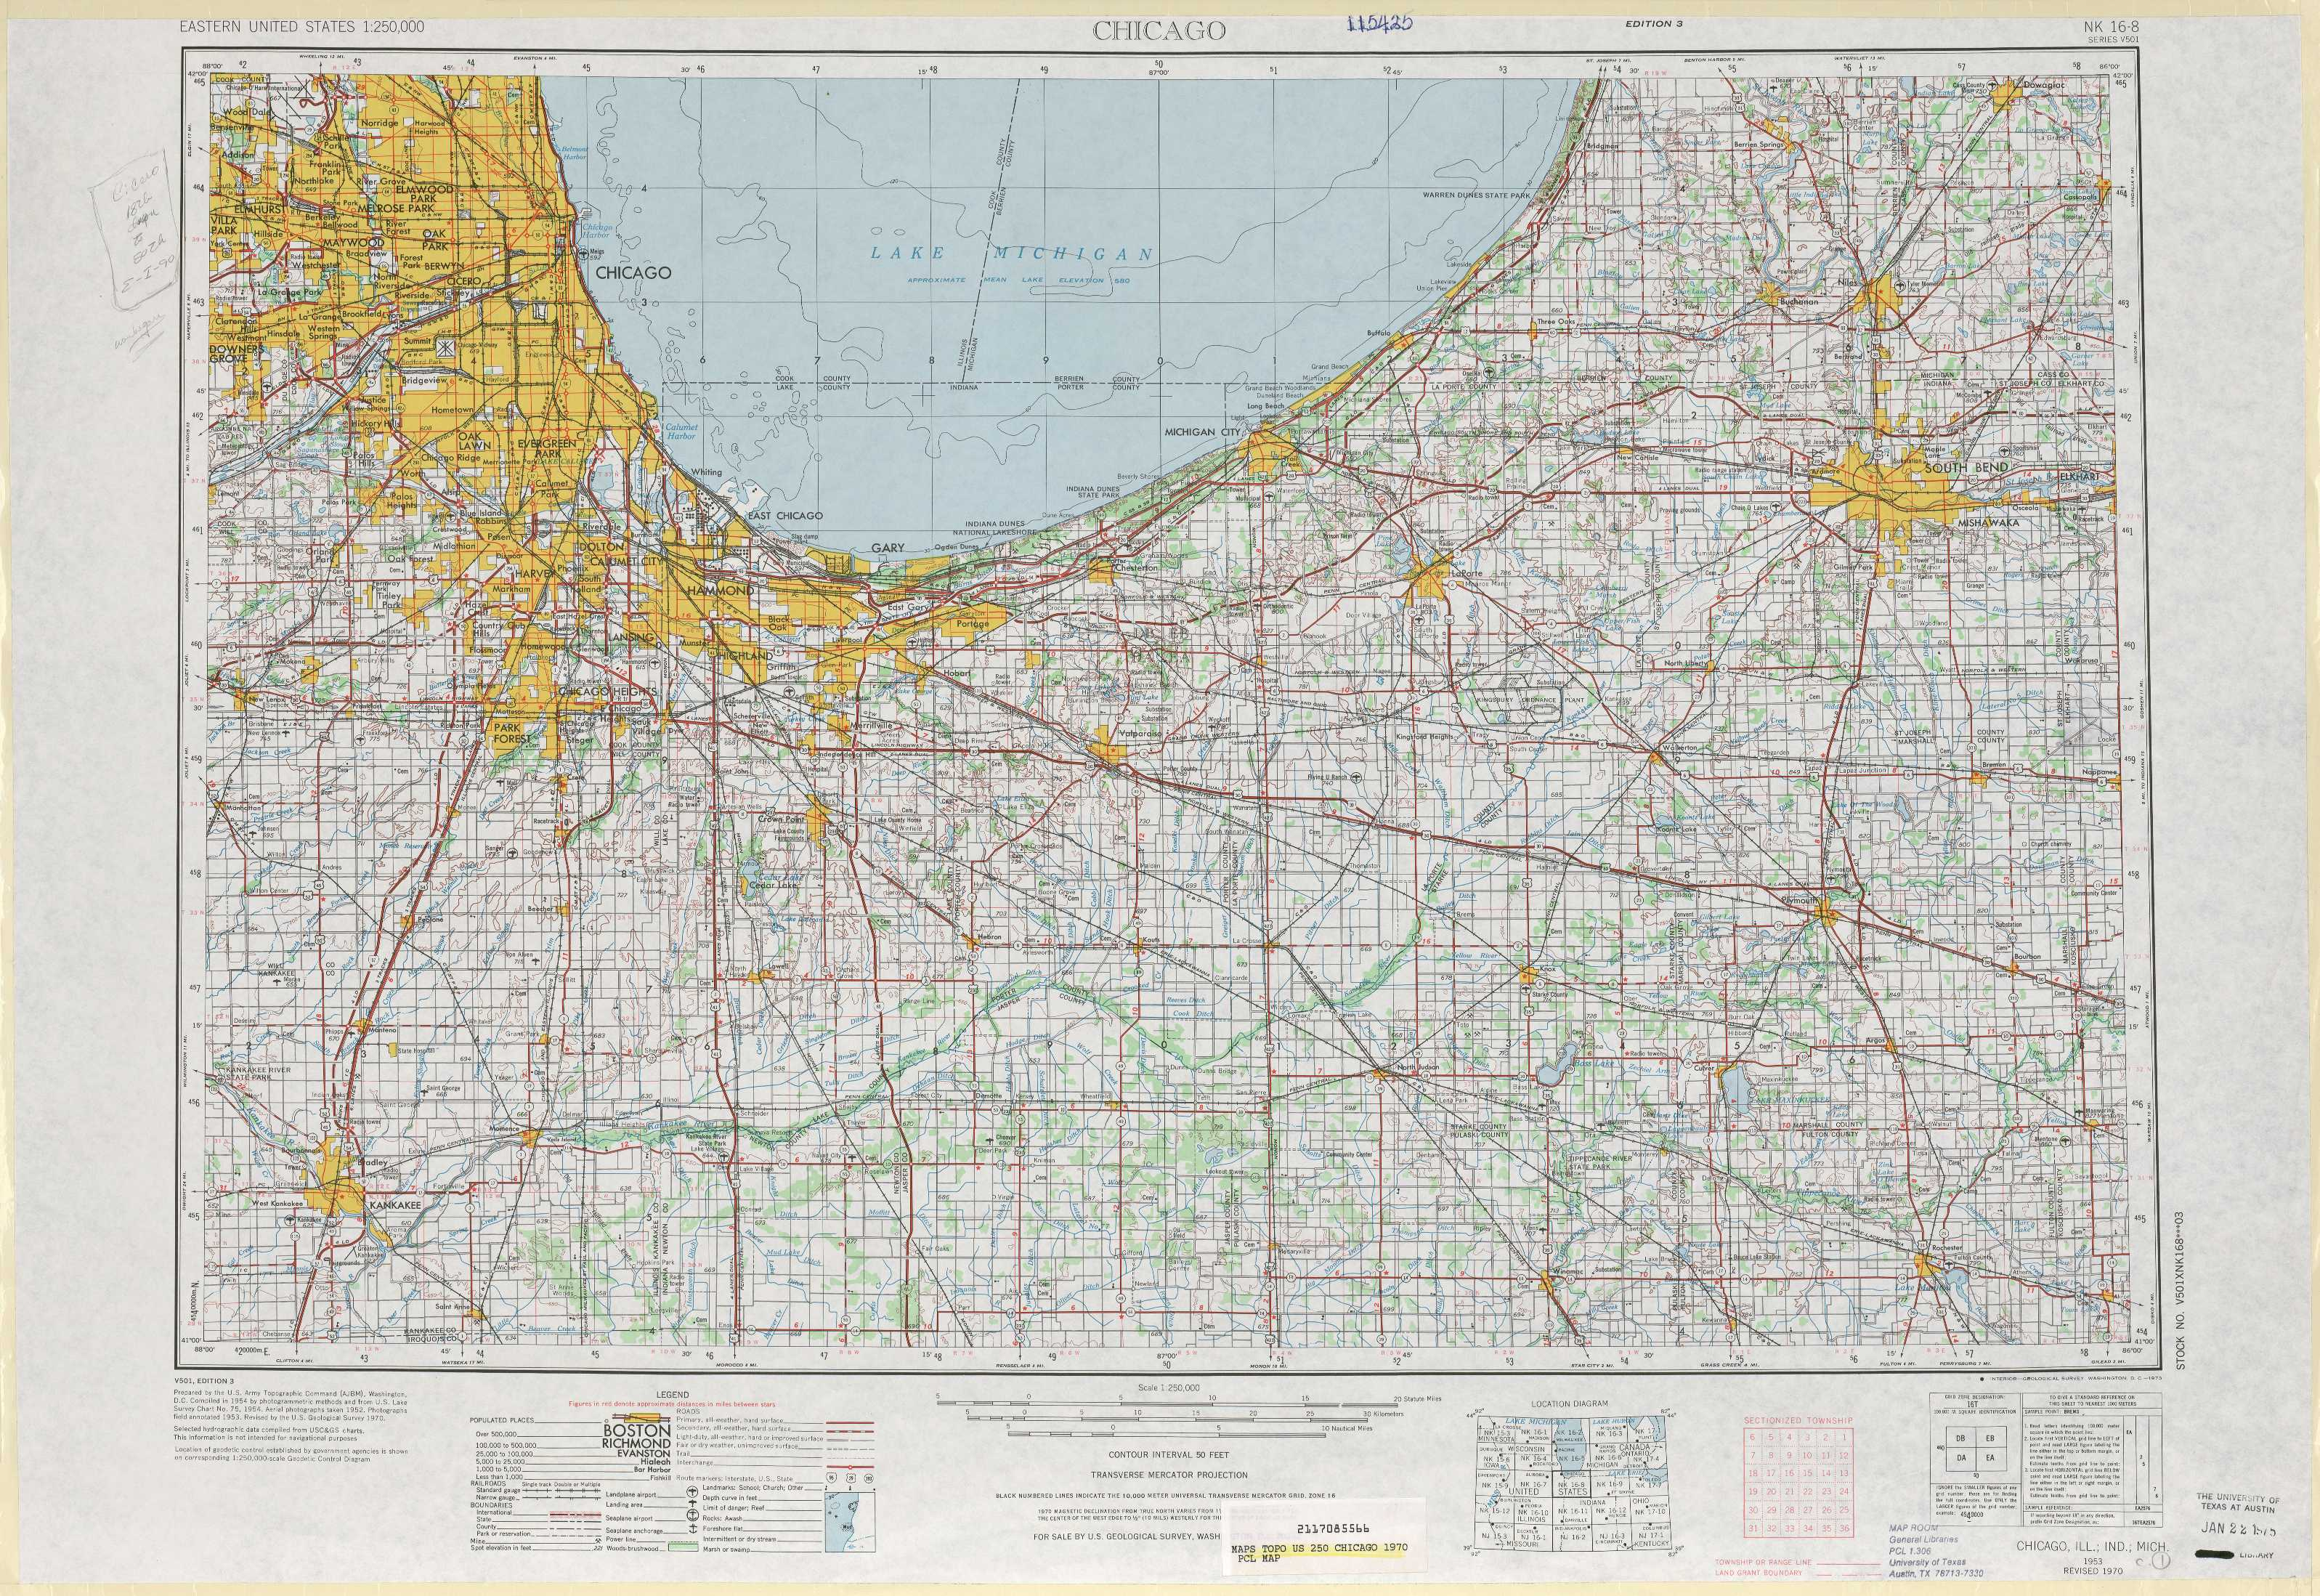 Topographic Map Chicago Topographic Map Of Chicago ~ CINEMERGENTE